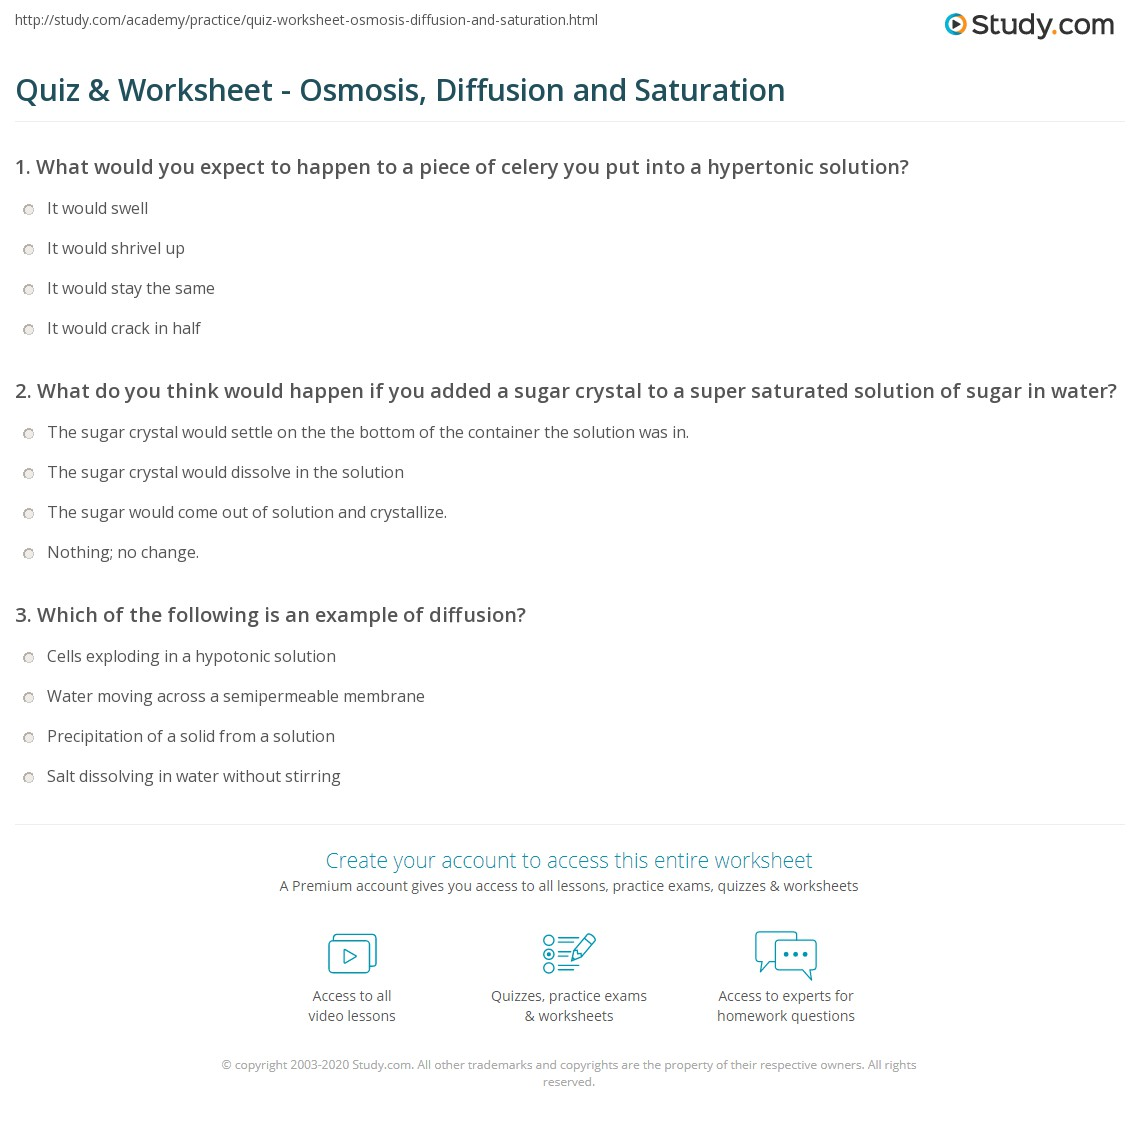 Quiz & Worksheet - Osmosis, Diffusion and Saturation | Study.com